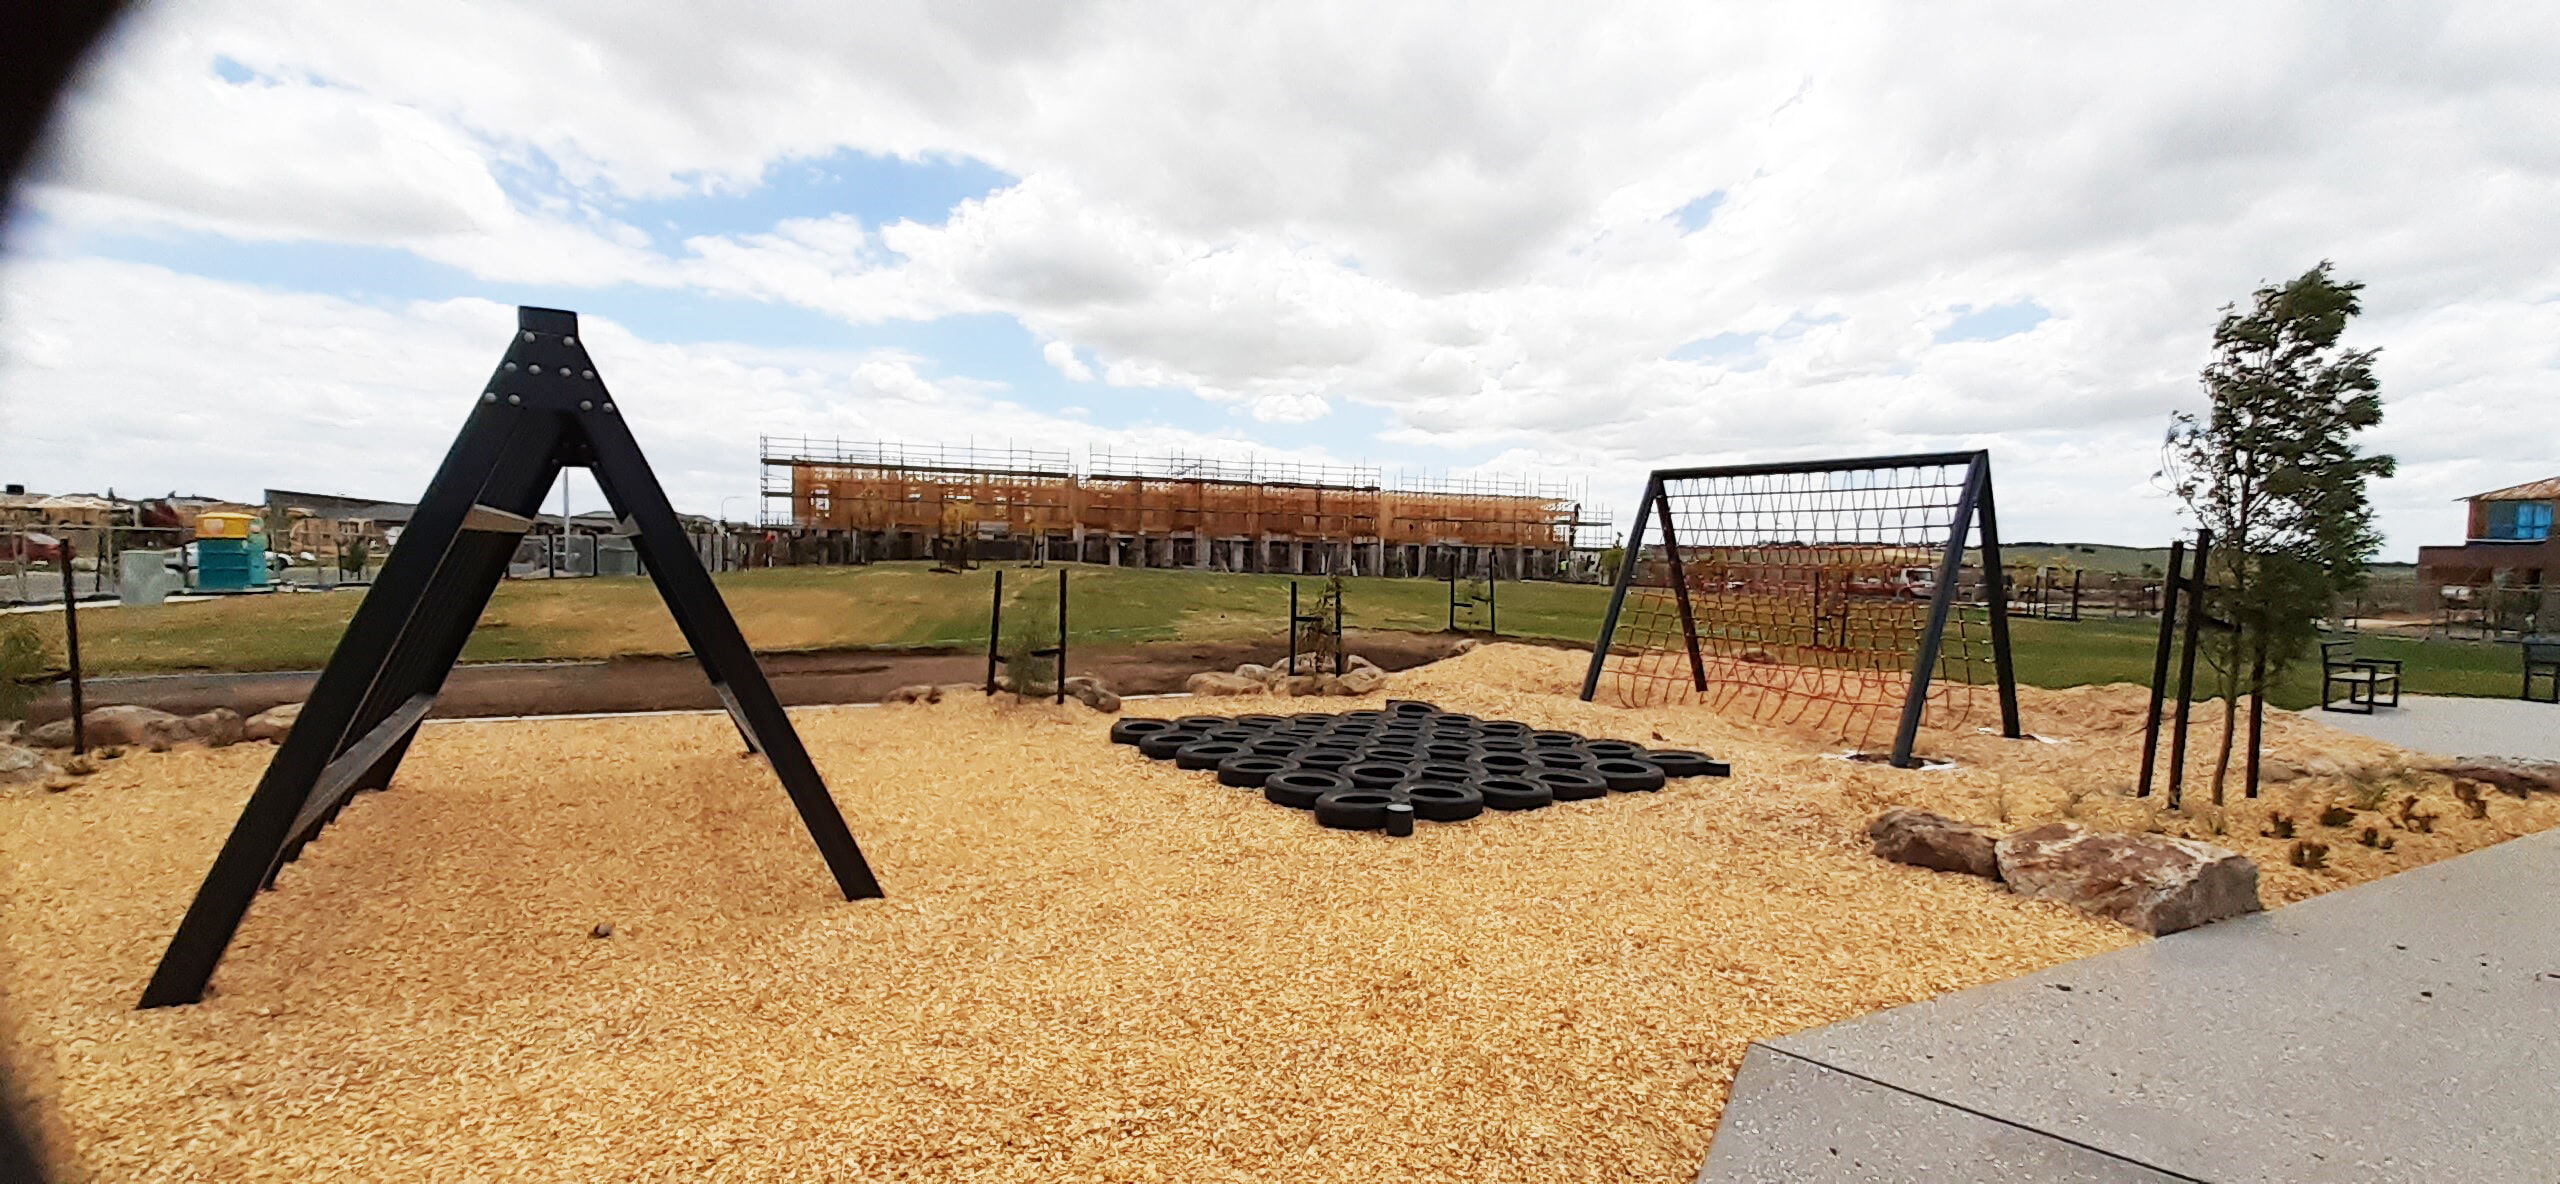 Playground with Rope Net Climbing Frame 2